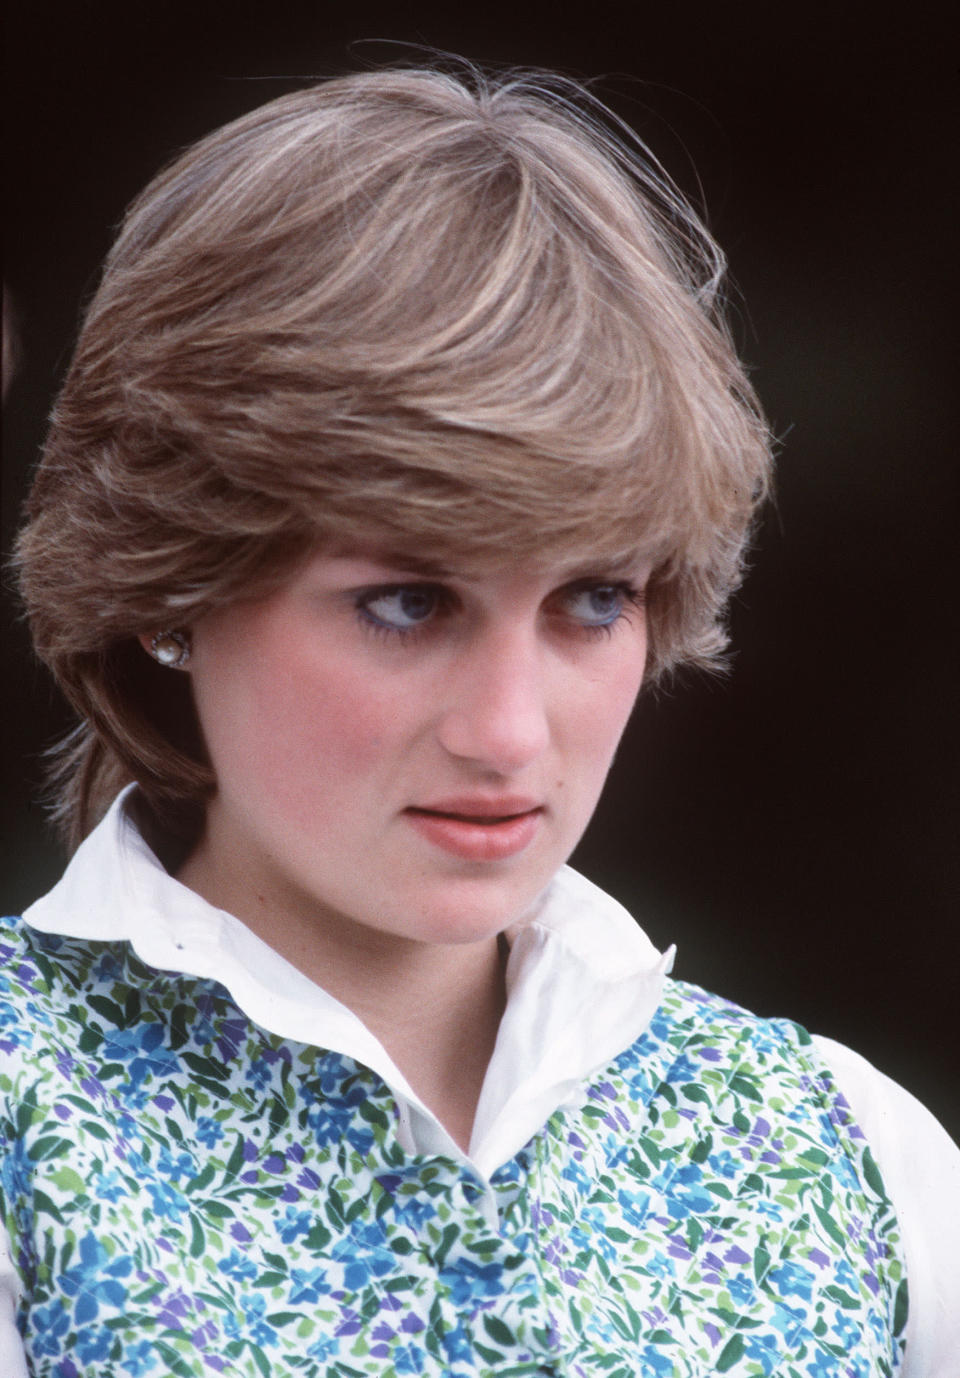 """<p>Princess Diana's ashy bouffant was voted the most influential haircut of the past fifty years, according to <em><a rel=""""nofollow noopener"""" href=""""http://www.stylist.co.uk/home/princess-diana-voted-most-iconic-hairstyle-of-the-last-50-years"""" target=""""_blank"""" data-ylk=""""slk:Stylist"""" class=""""link rapid-noclick-resp"""">Stylist</a></em>. And it's hardly surprising, as the Sloane cut was soon to become increasingly associated with the royal family.<br><em>[Photo: PA]</em> </p>"""